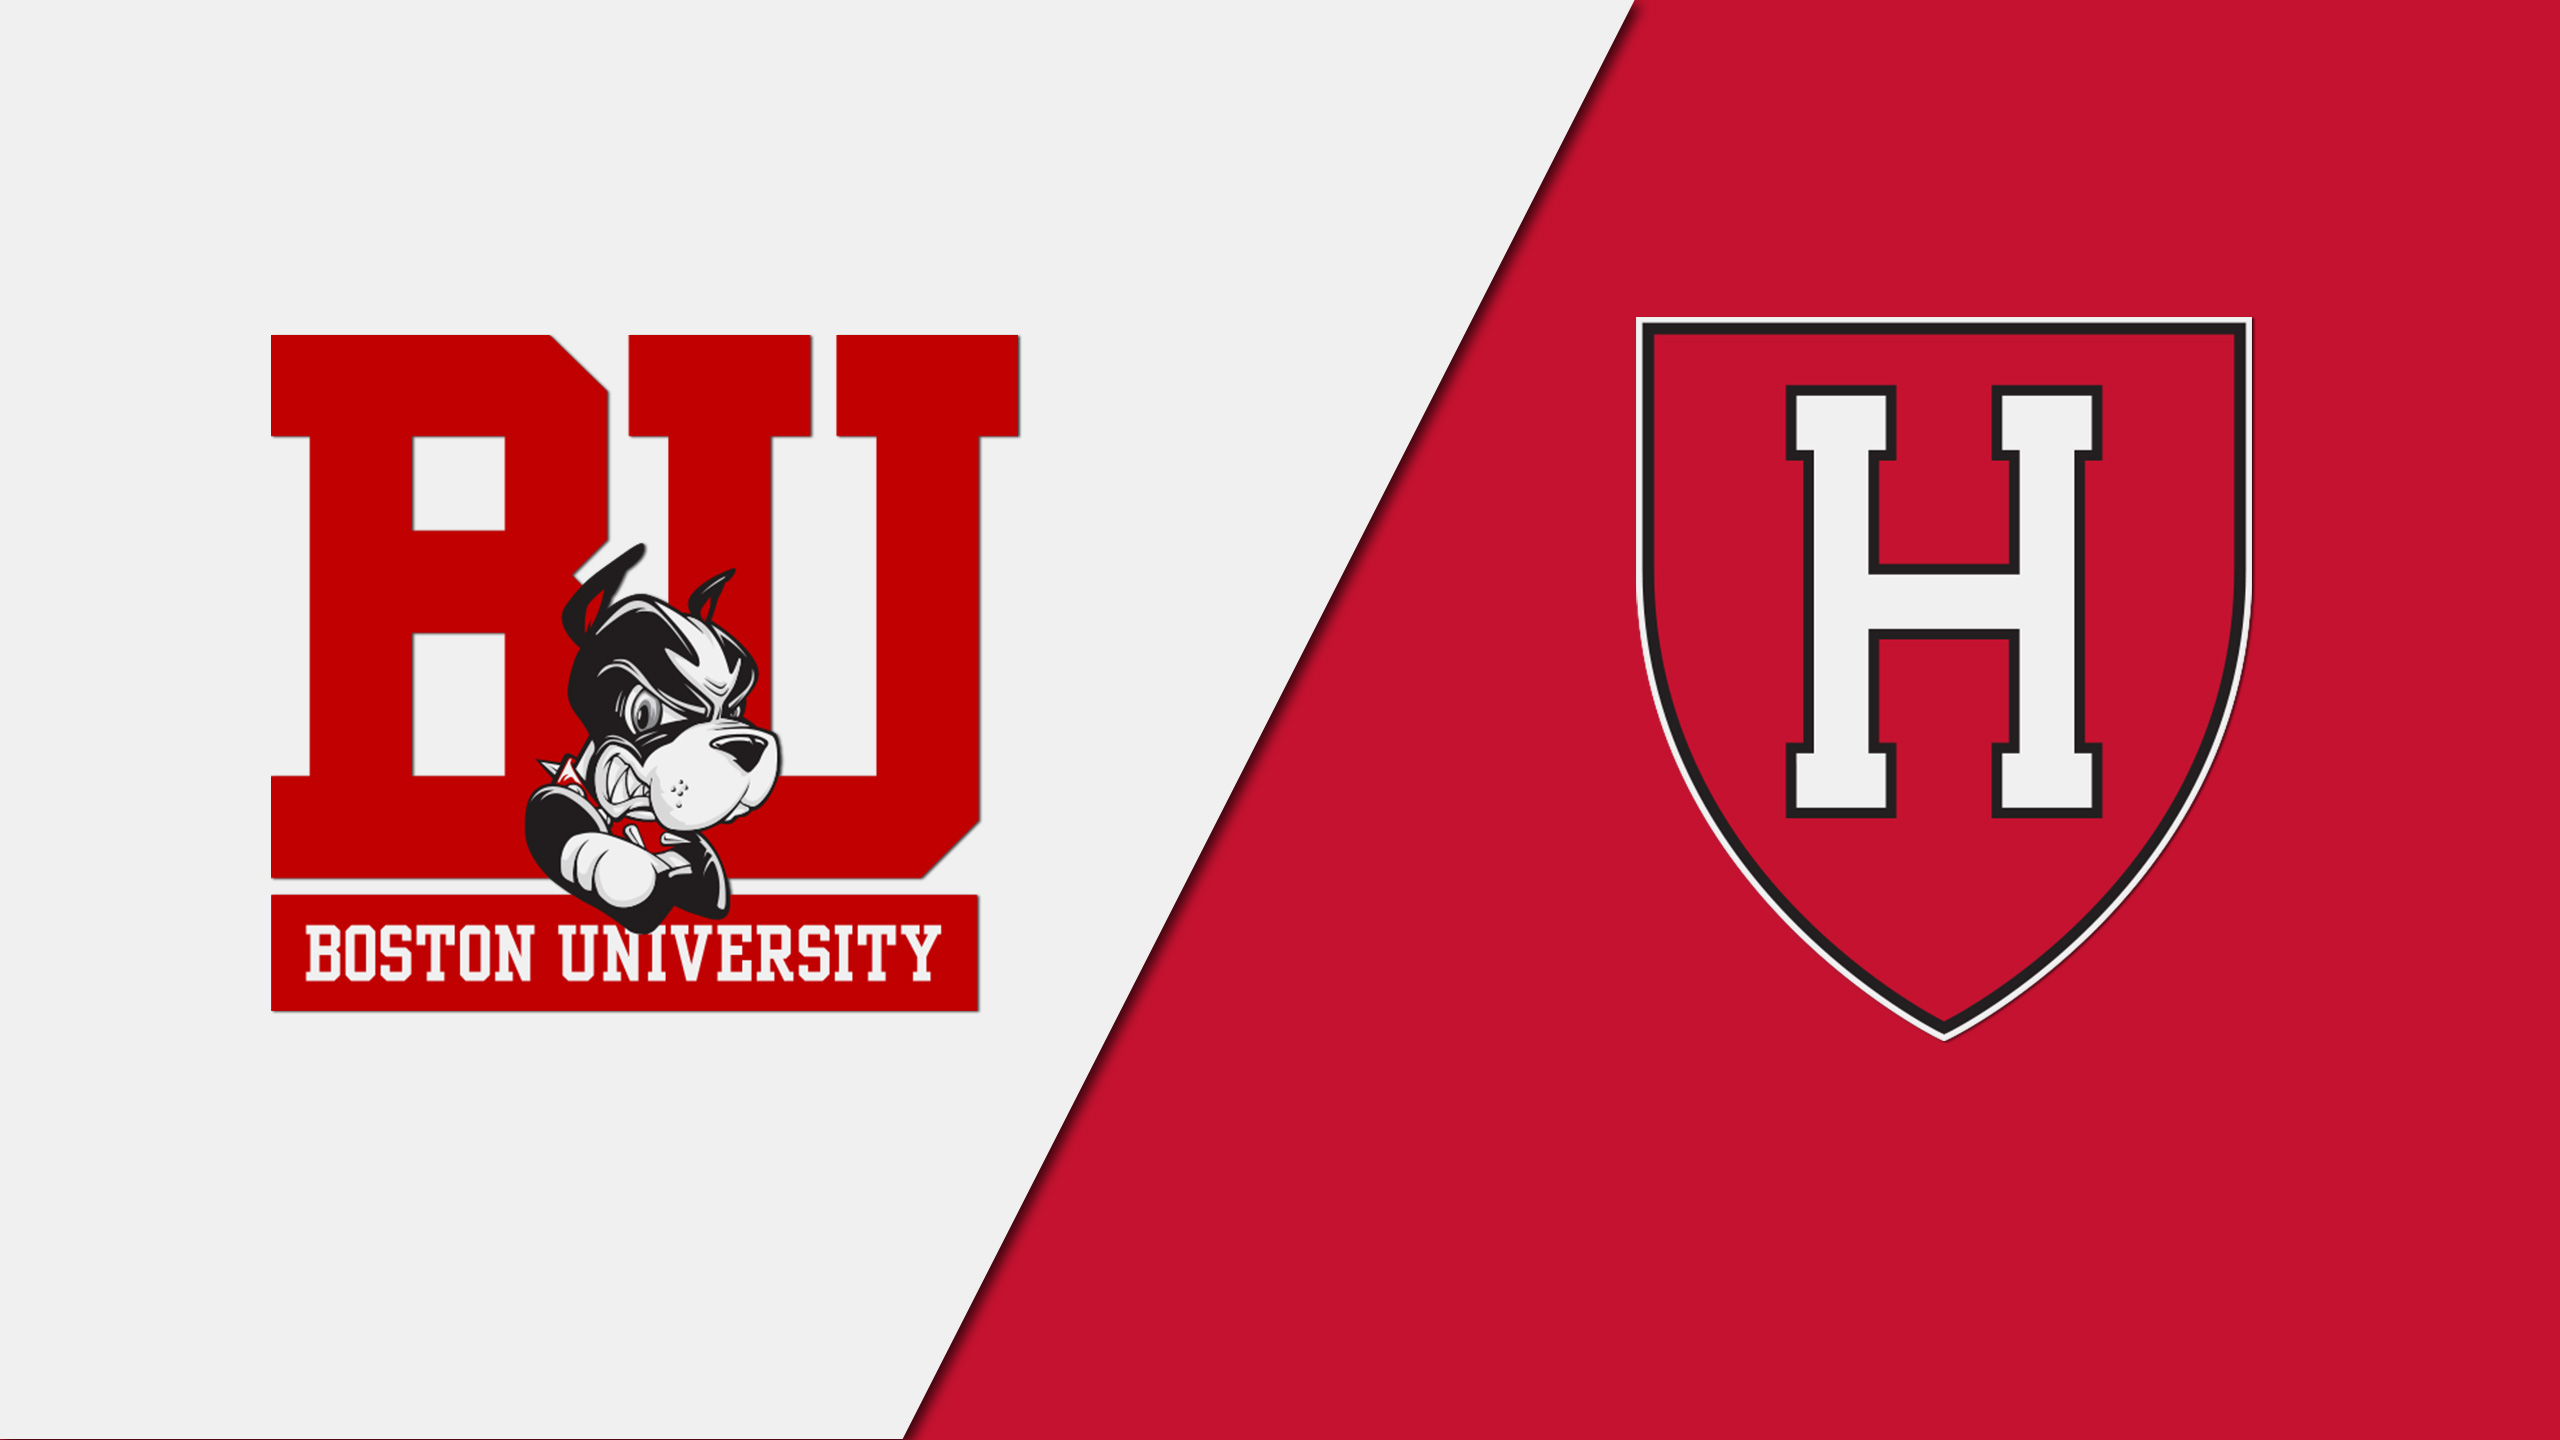 Boston University vs. Harvard (Court 5)